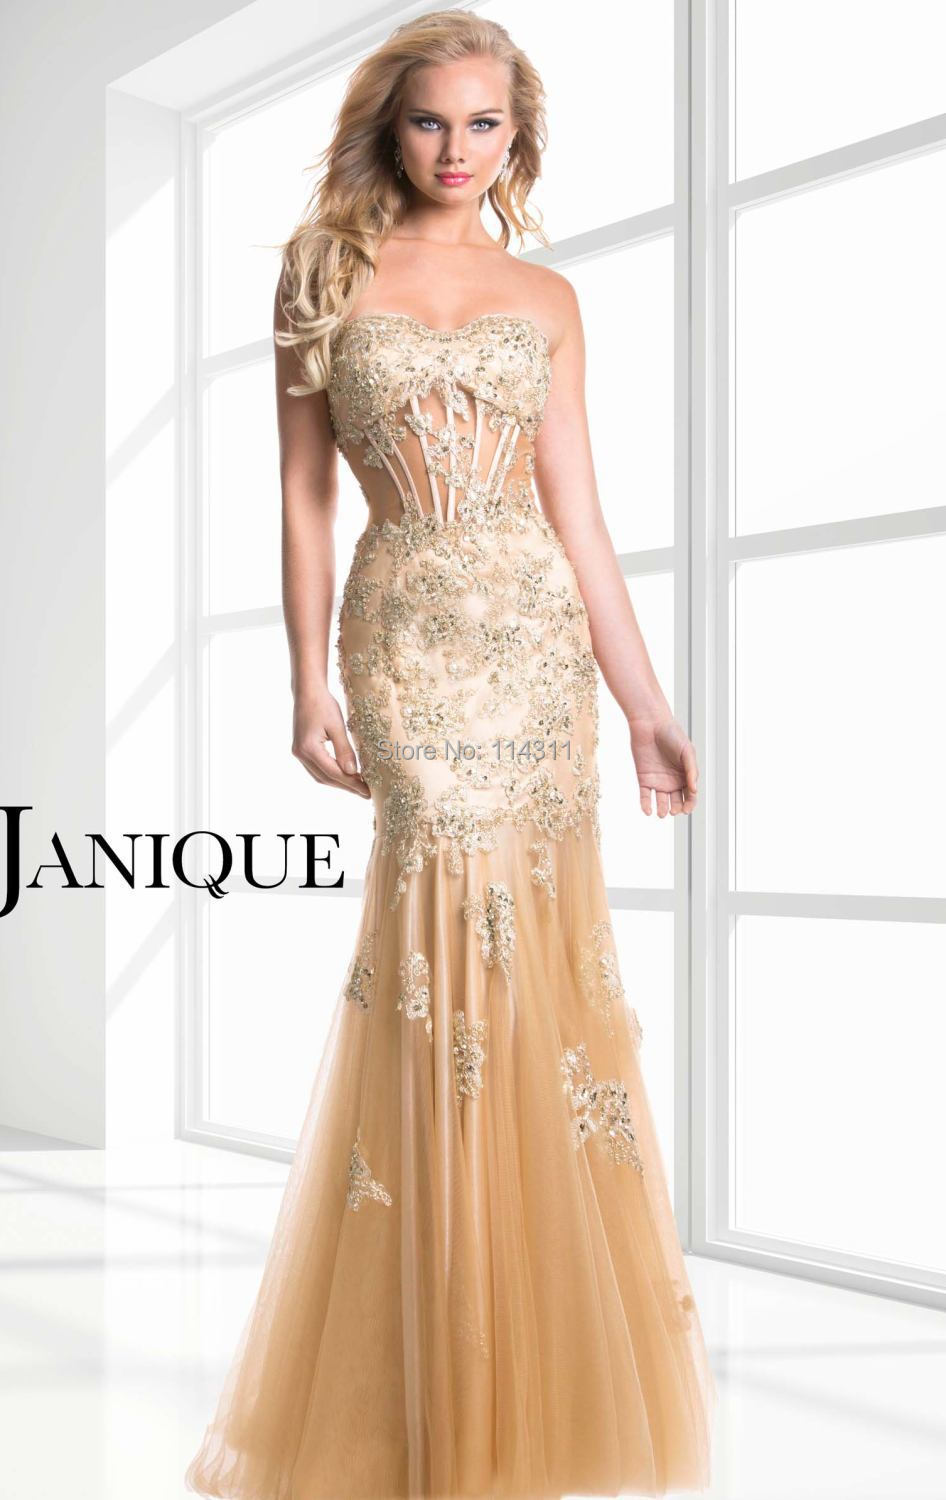 Champagne Gold Prom Dresses 2016 Sweetheart Sheer Waist ... Lace Gold Bridesmaid Dresses